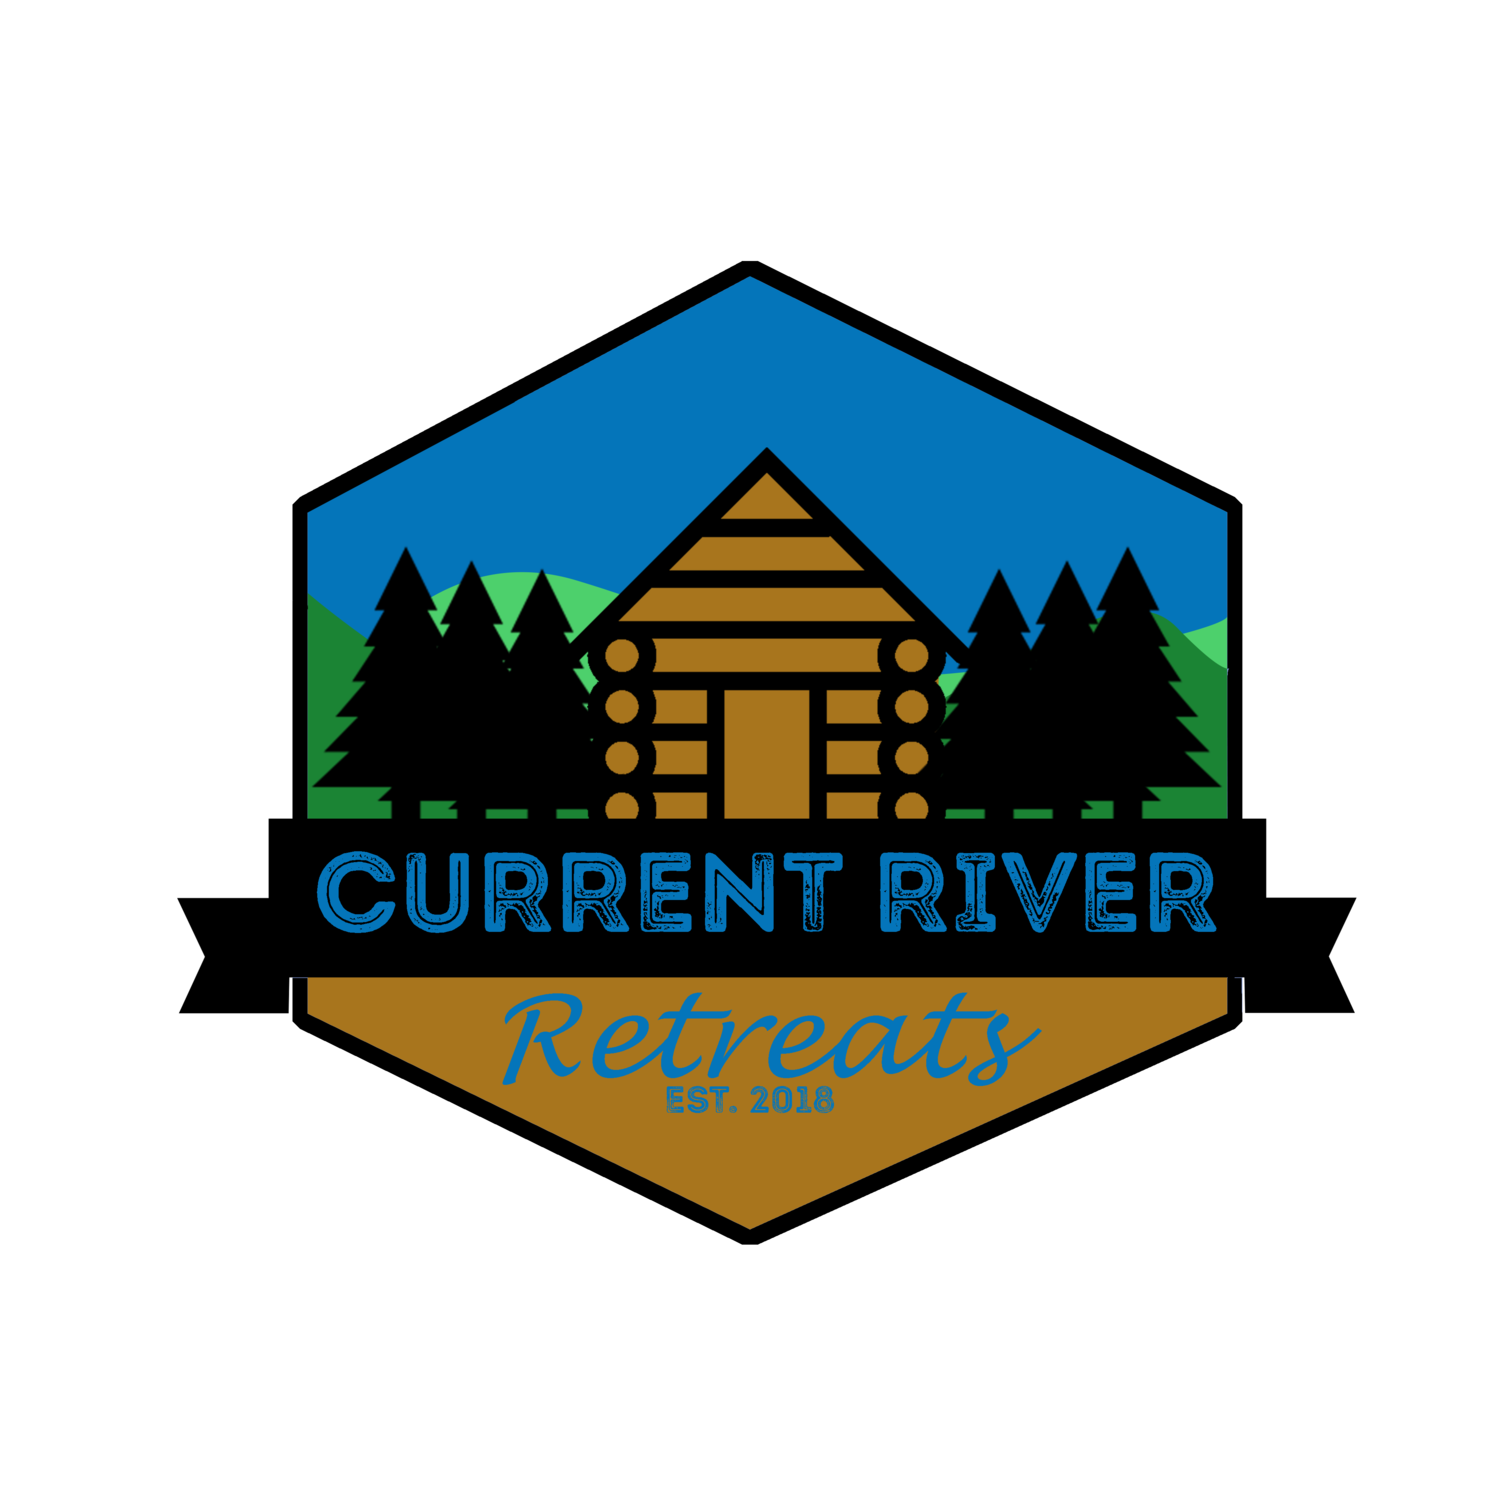 Current River Retreats